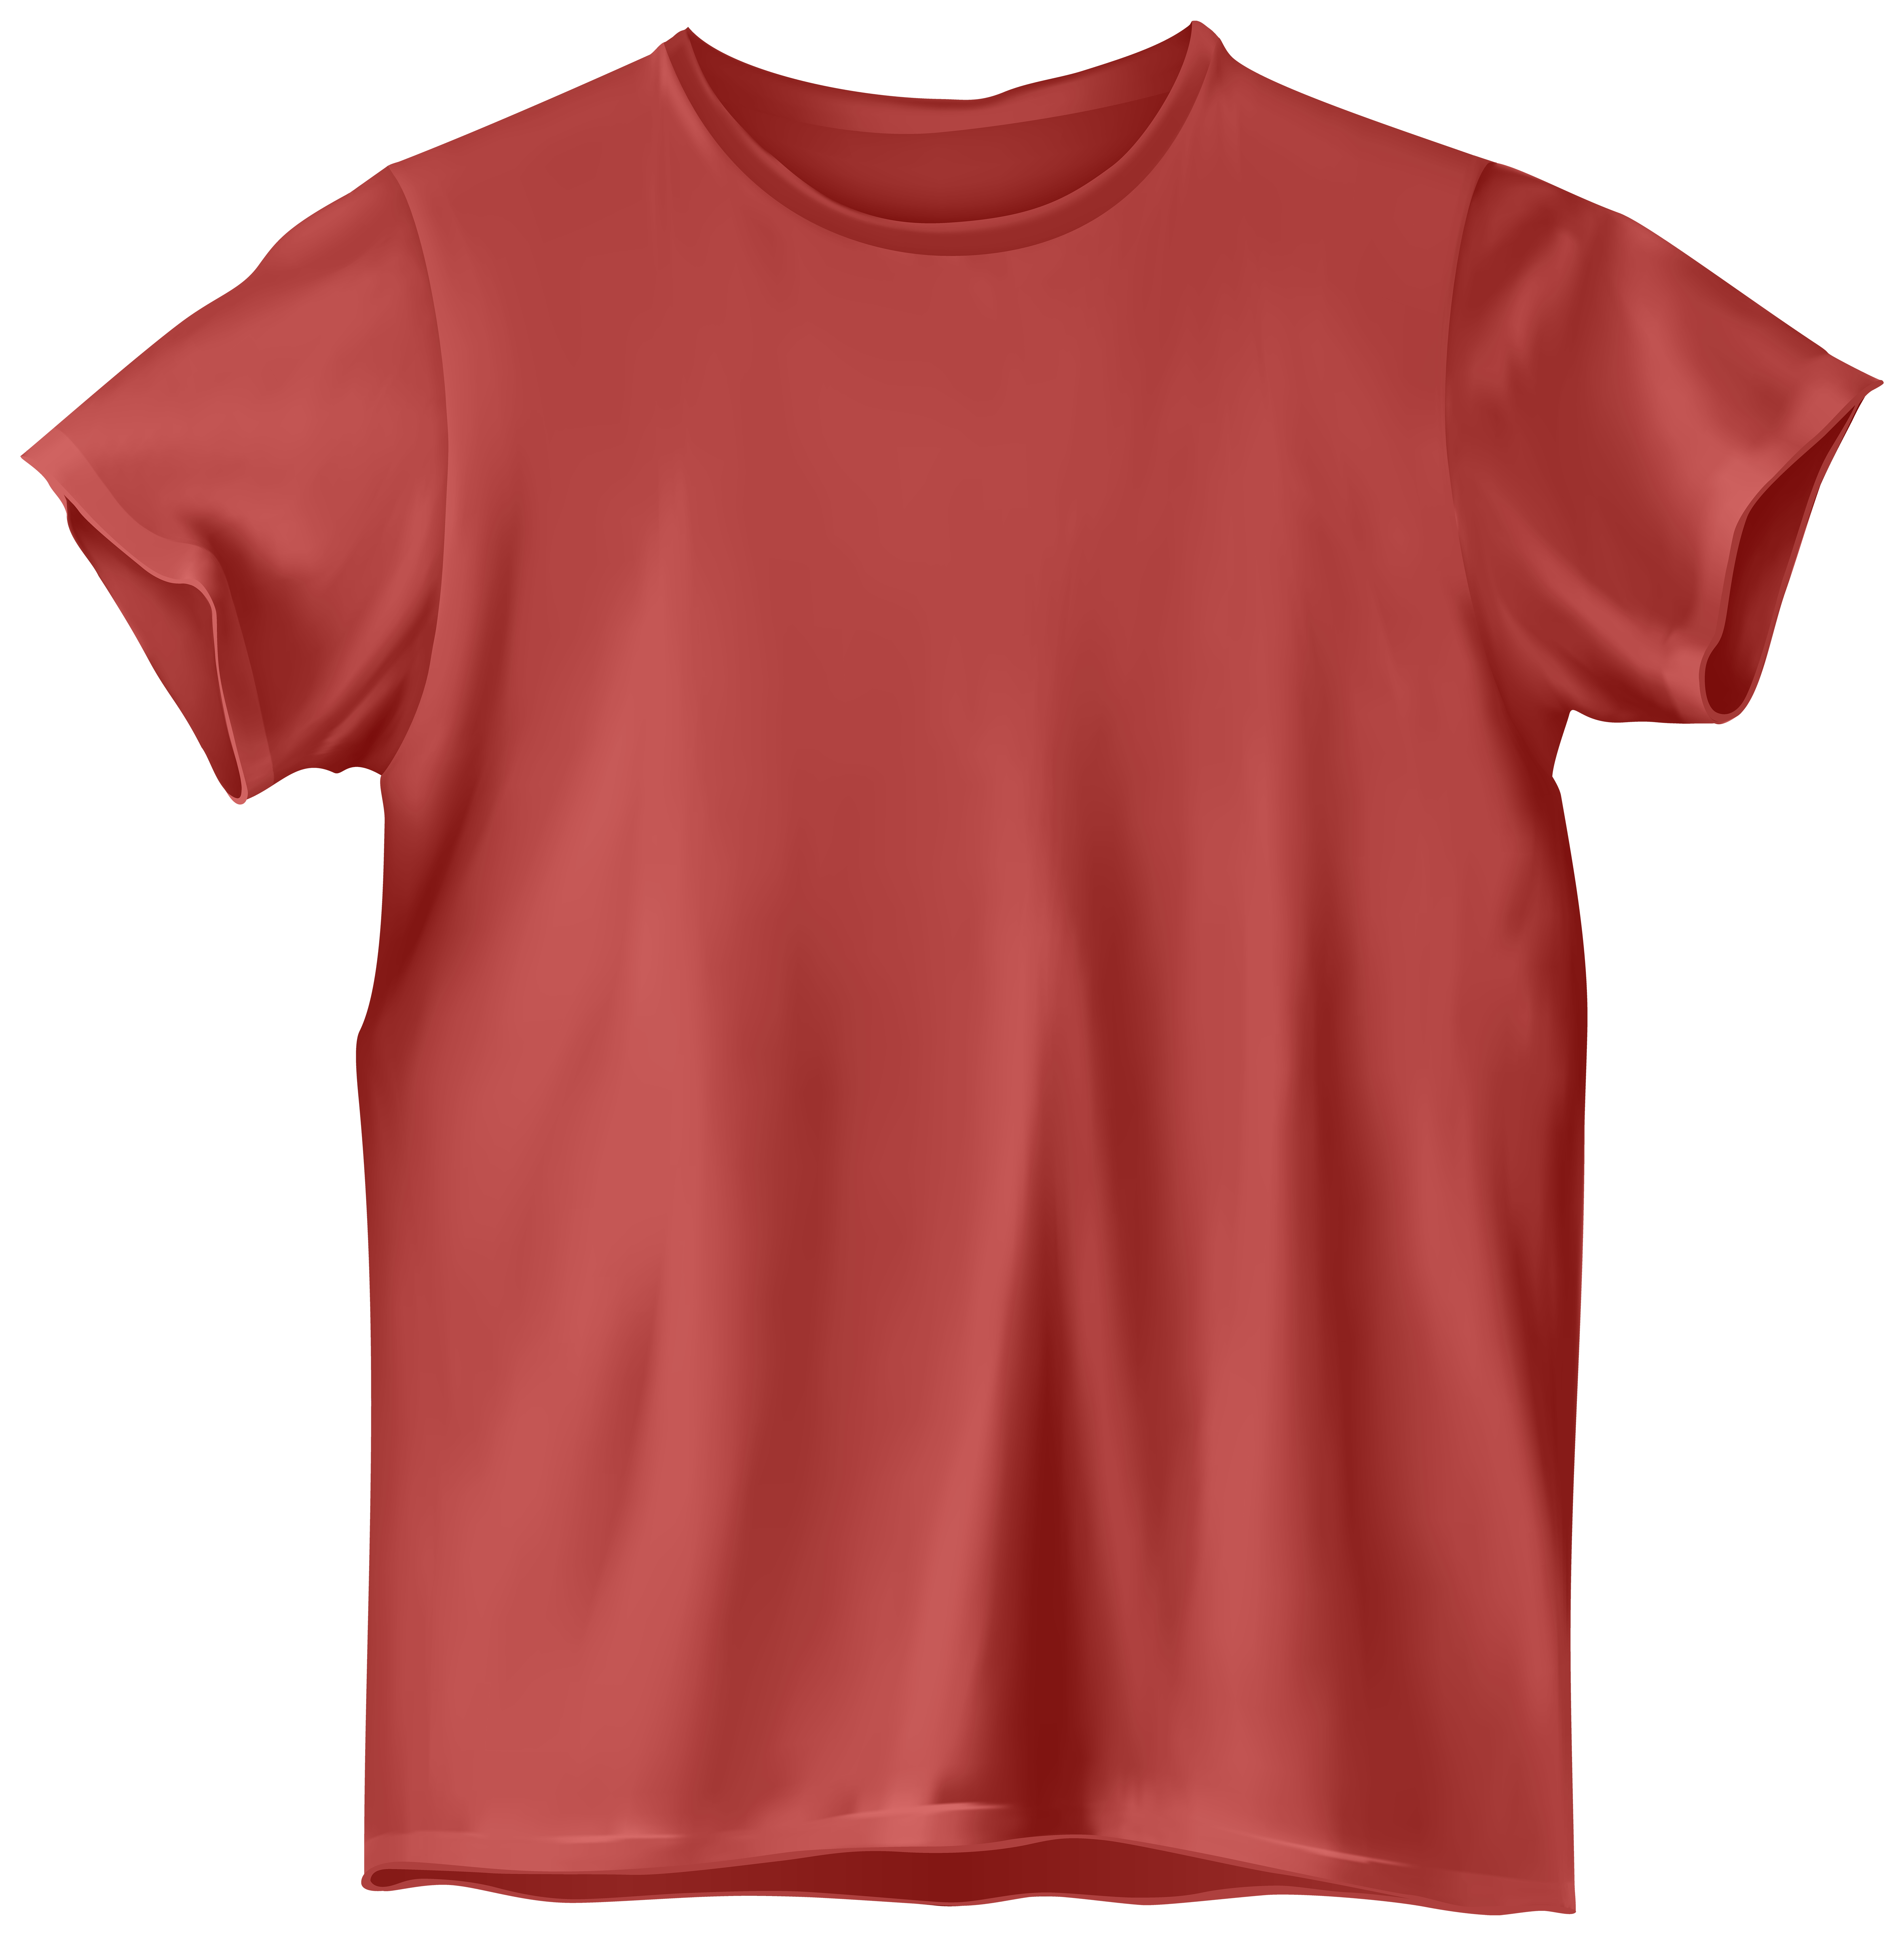 Red T Shirt PNG Clip Art.